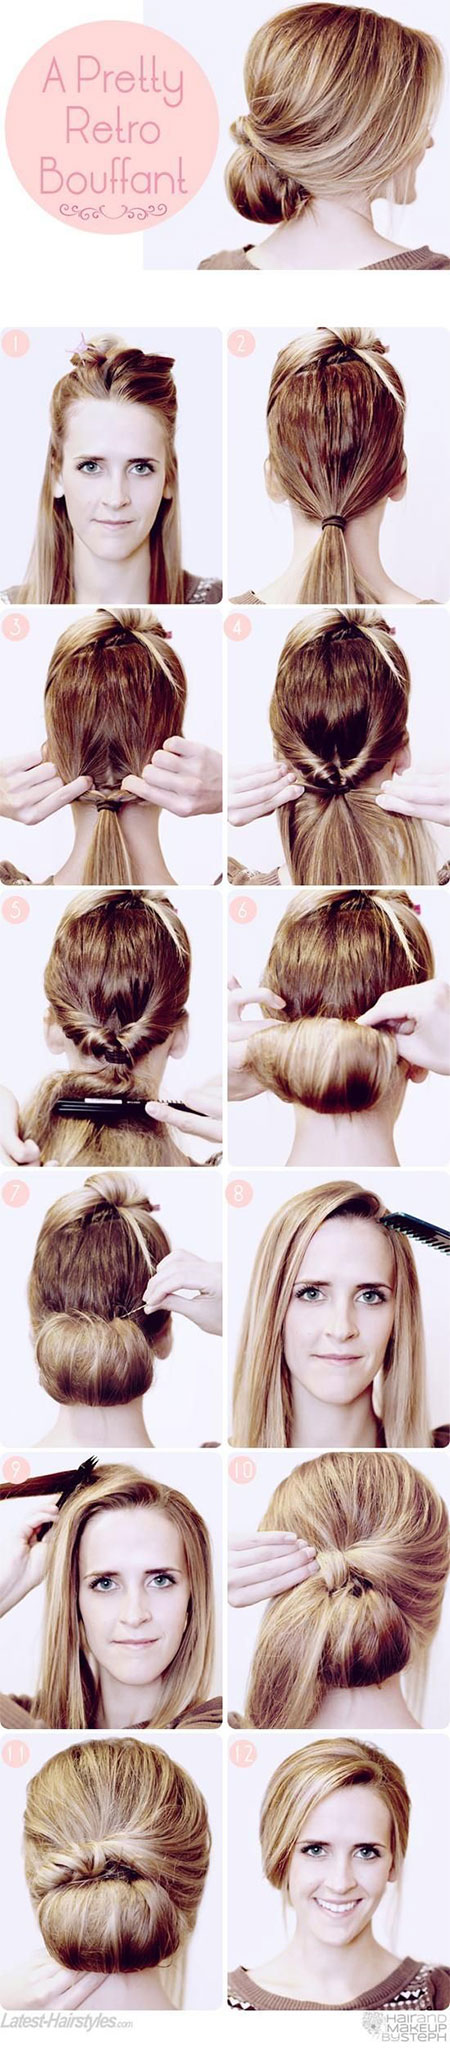 25-Fun-Quick-Spring-Summer-Hairstyle-Tutorials-2014-For-Girls-Women-11